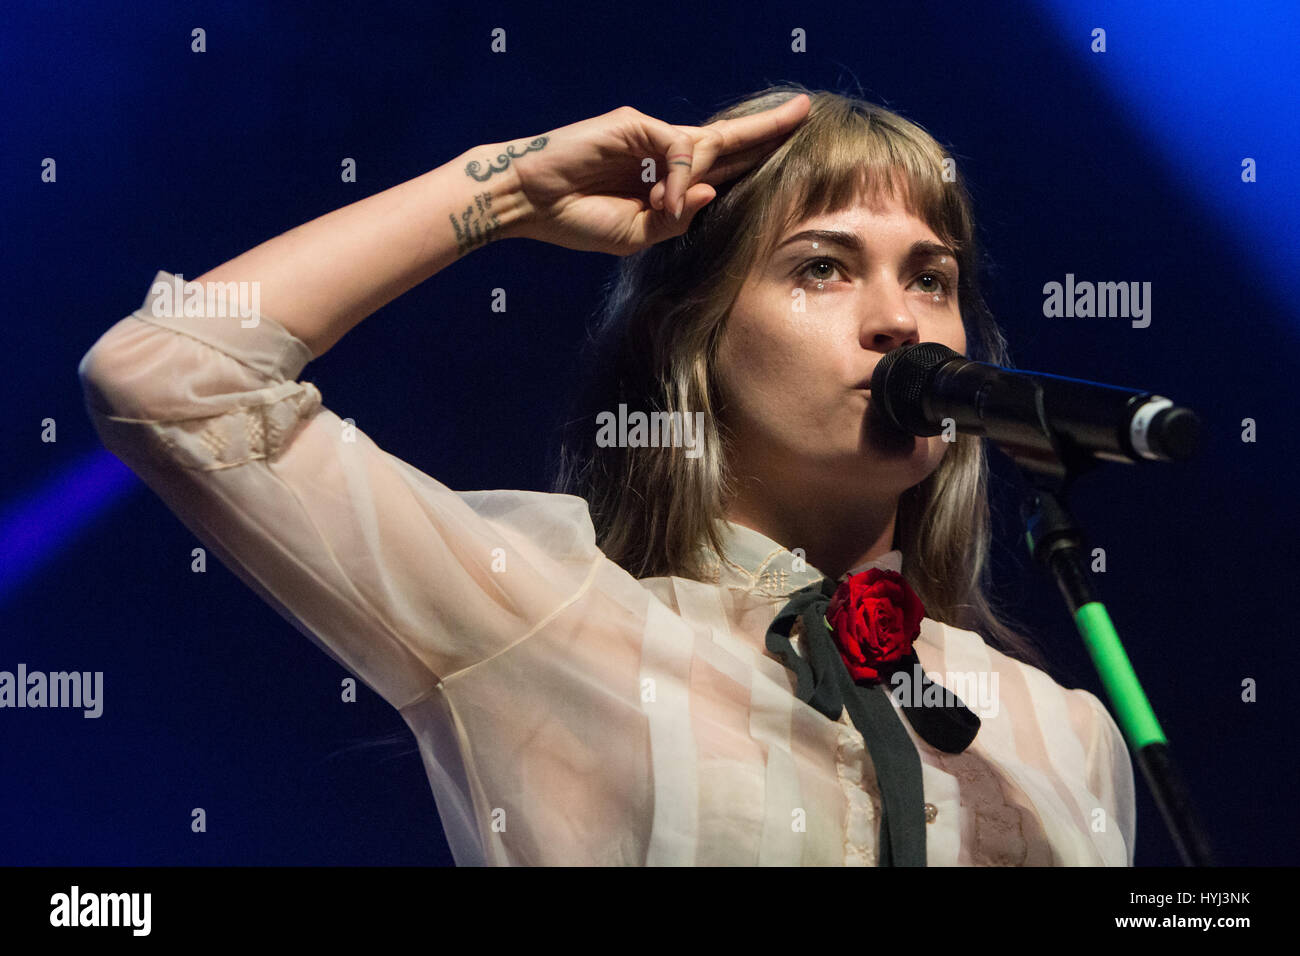 Milan, Italy. 03rd Apr, 2017. The American singer-songwriter and actress LAUREN RUTH WARD performs live on stage - Stock Image